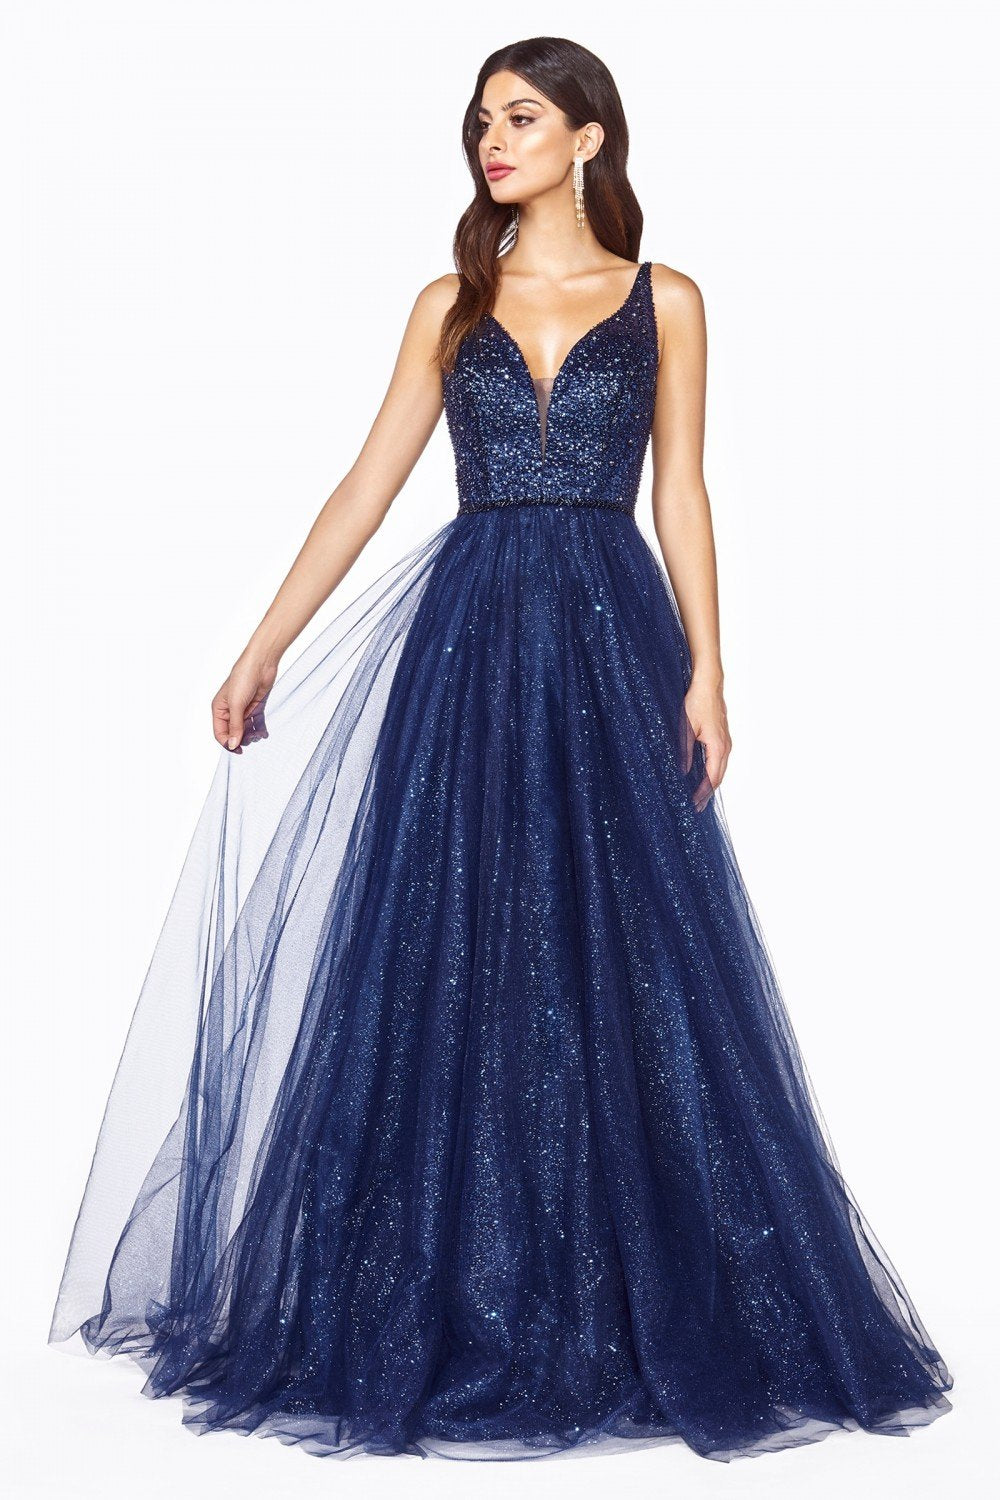 Cinderella Divine - CD0150 Sleeveless Embellished Top Glitter Tulle A-Line Dress In Blue